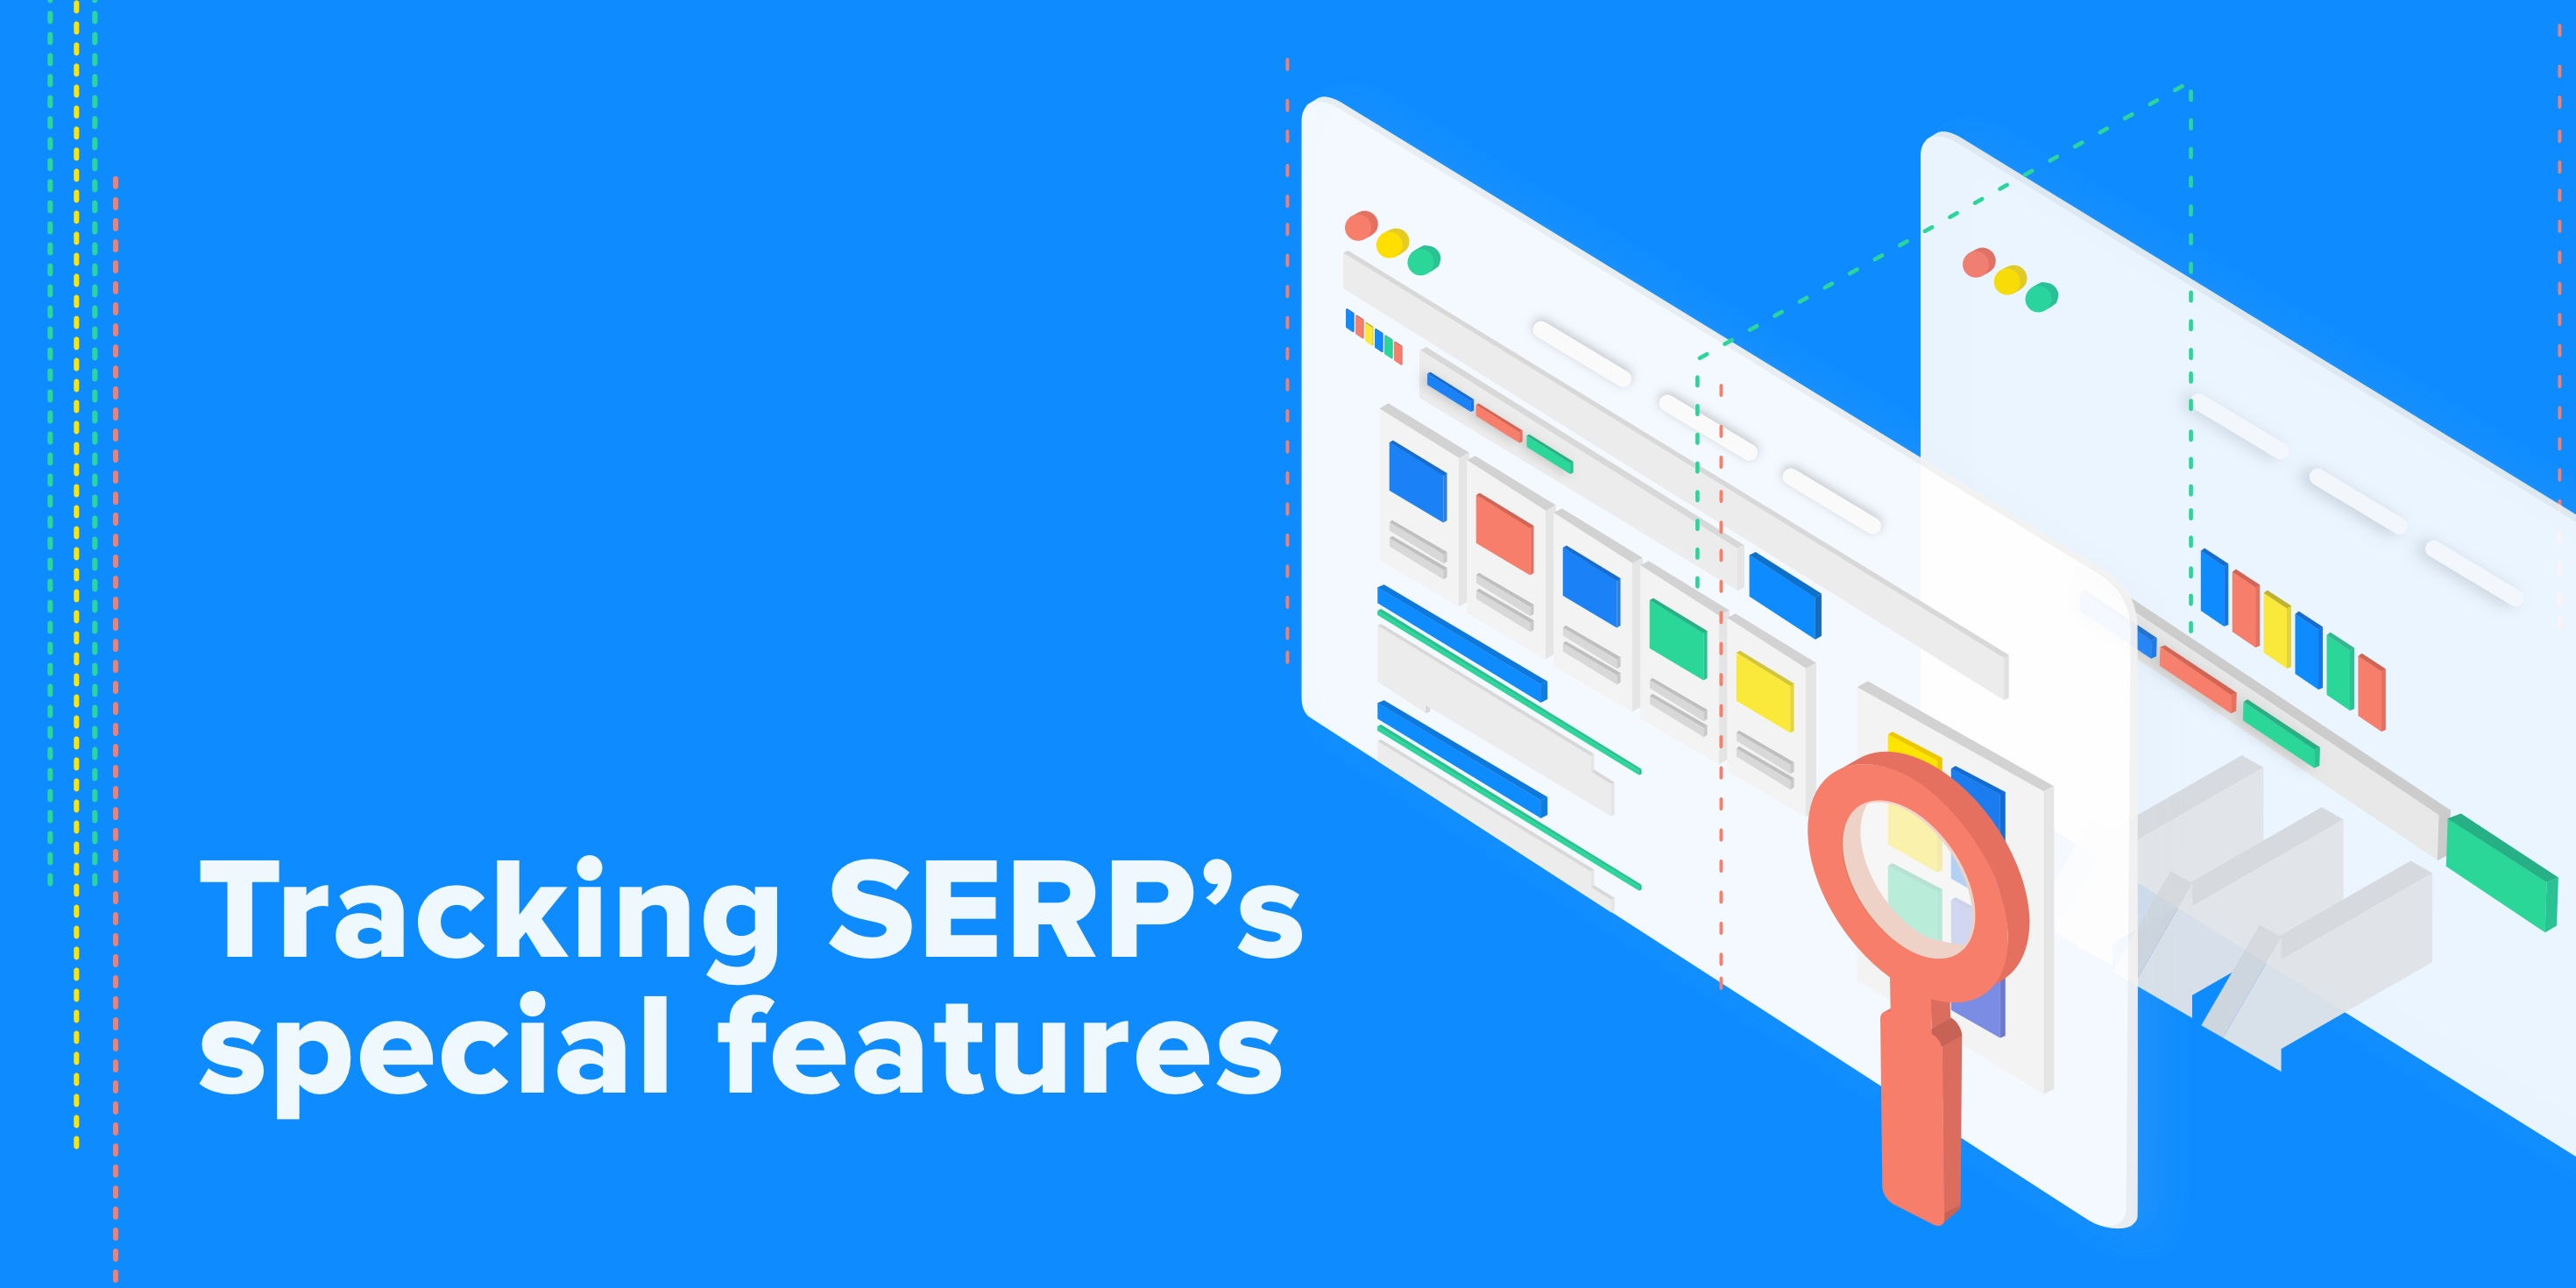 tracking-serps-special-features-jpg